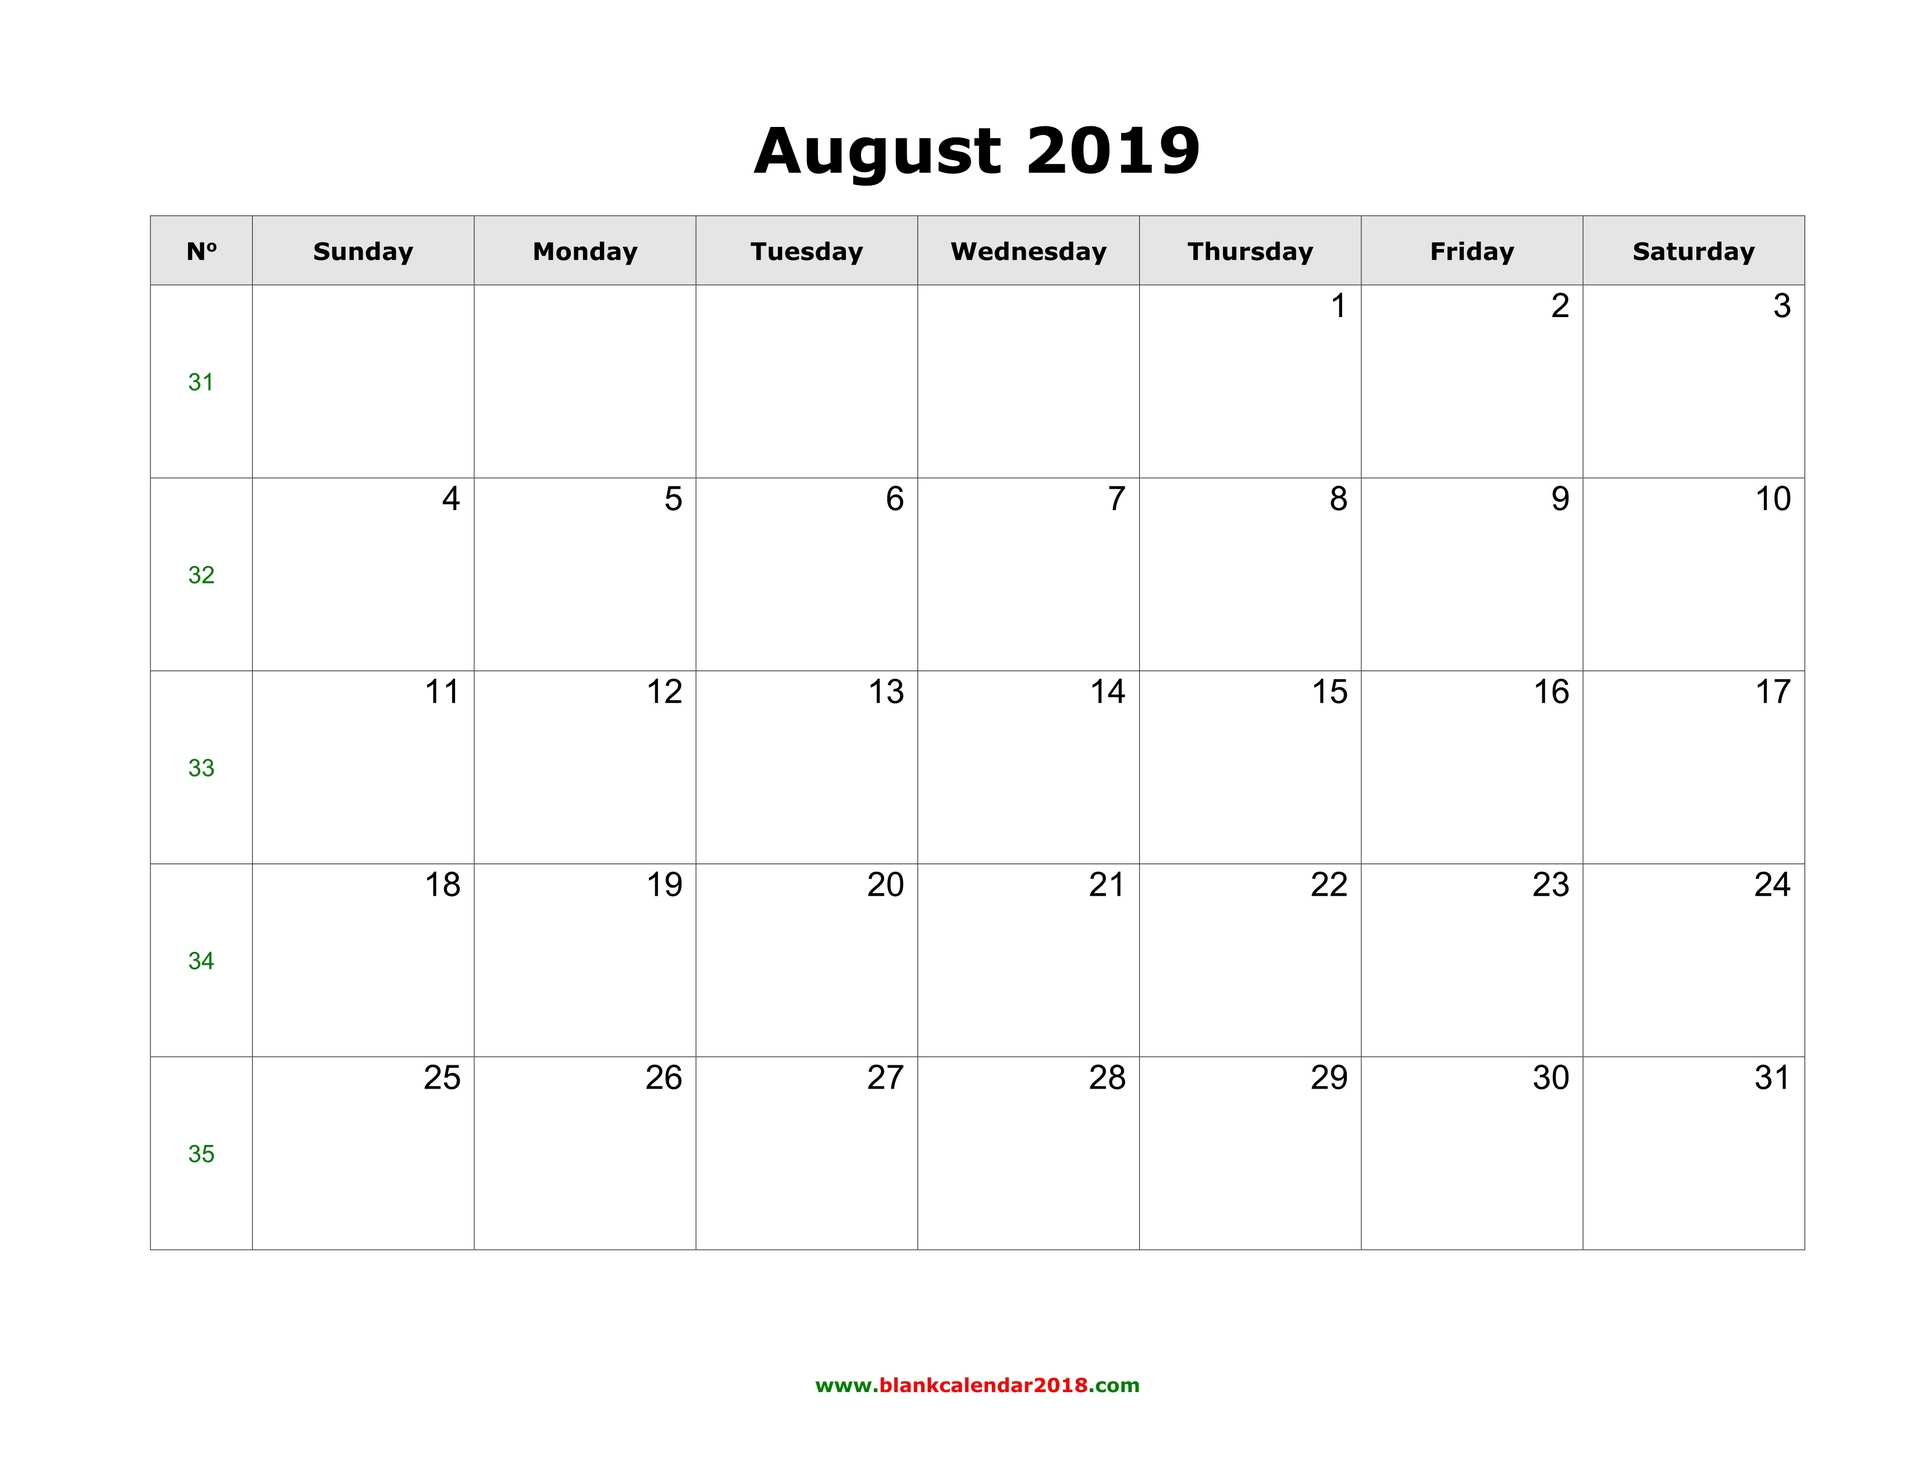 Blank Calendar For August 2019 in August Blank Calendar Template